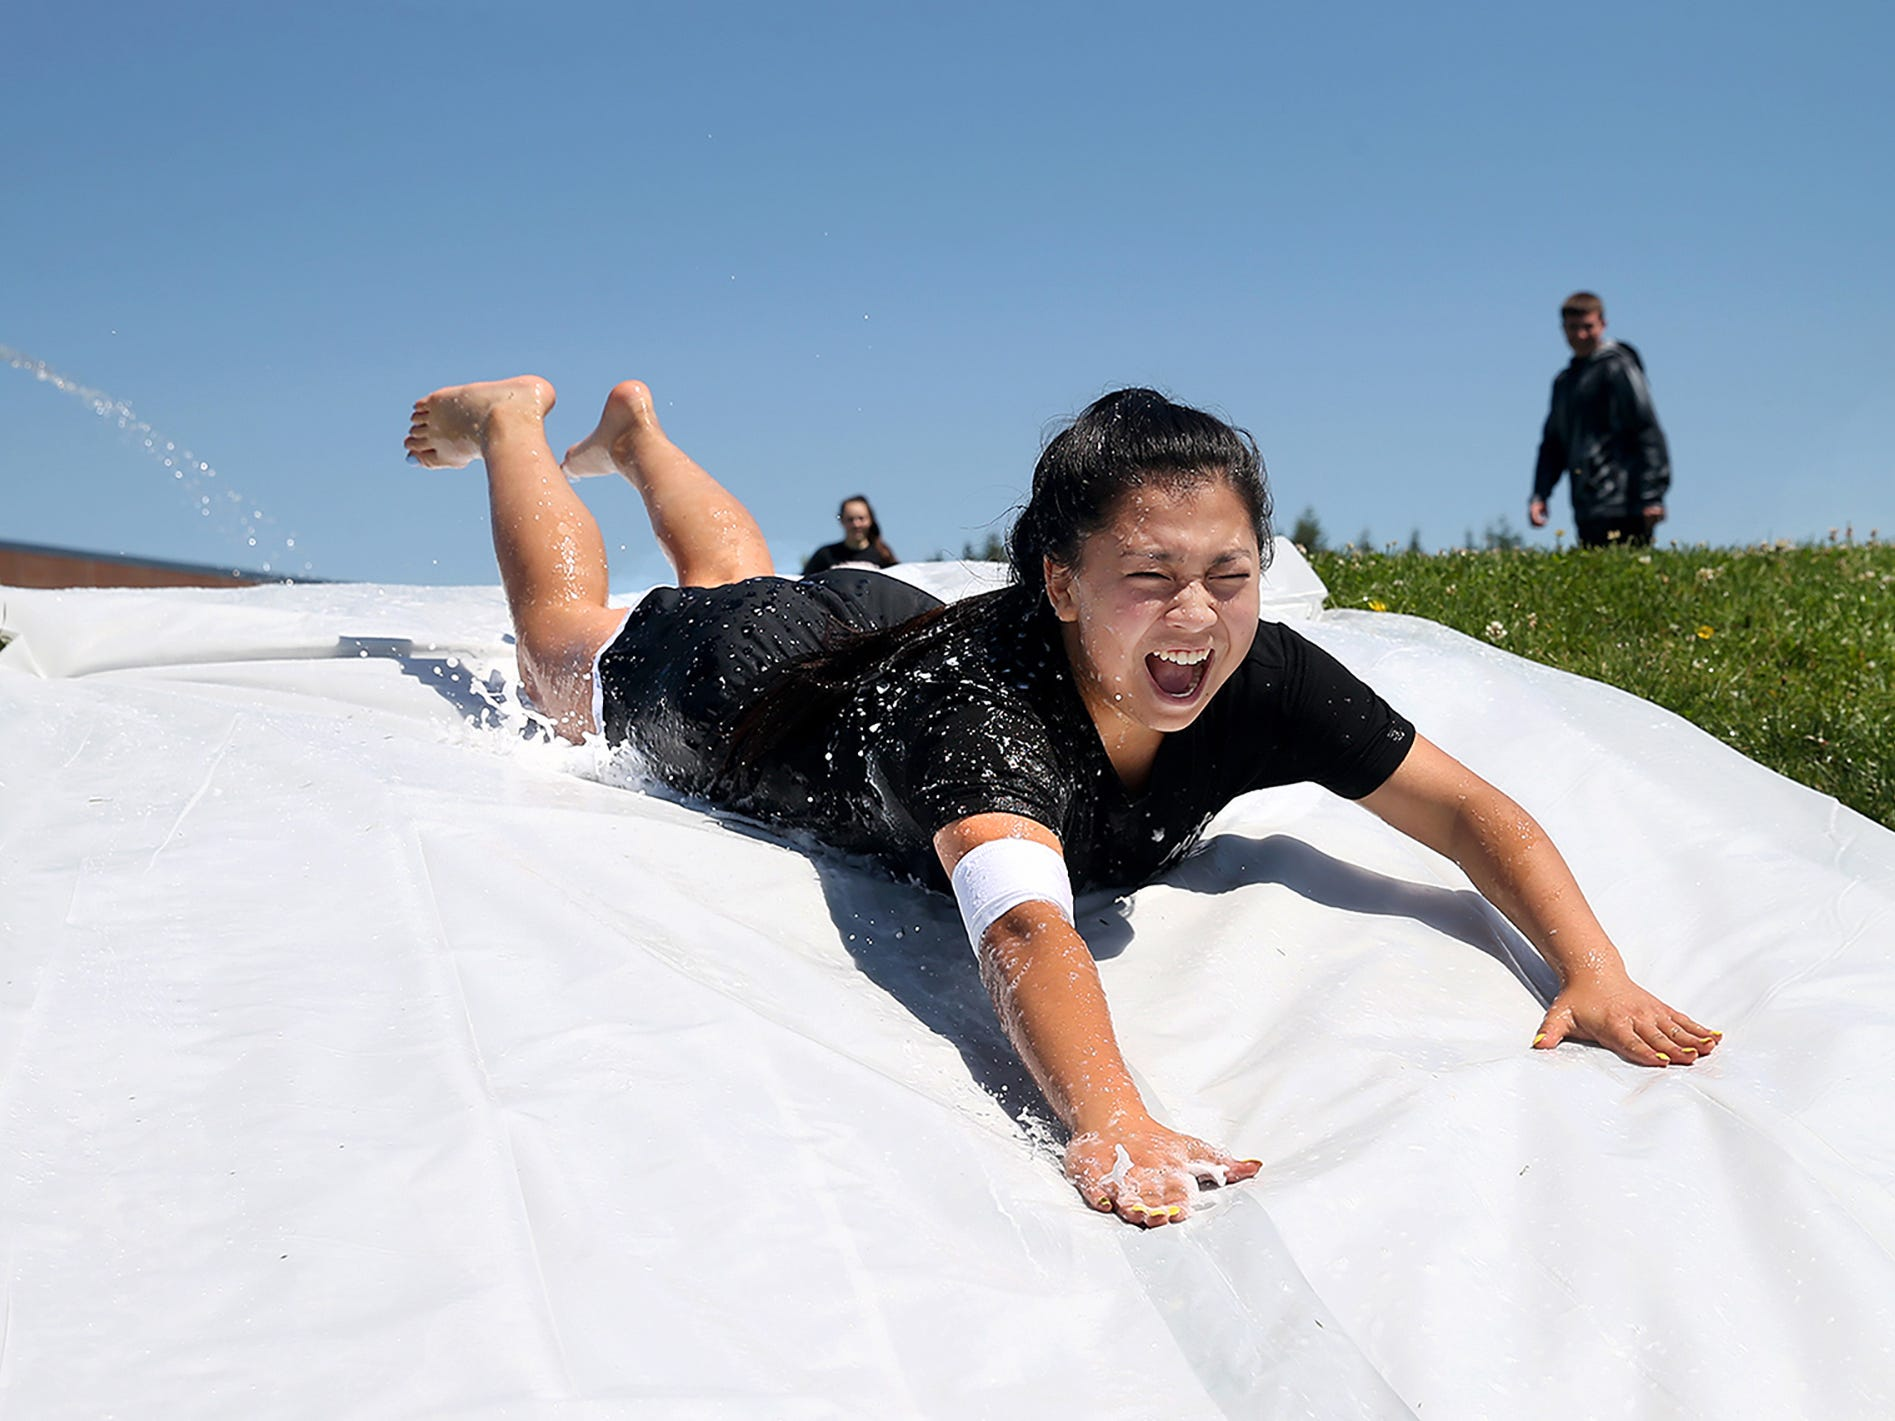 Ridgetop Middle School eighth grade student Meghan Landon, 14, goes down the slip-and-slide at the field day event Tuesday June 19, 2018.. Wednesday is the last day of school. She said it's her first every time going down a slide.